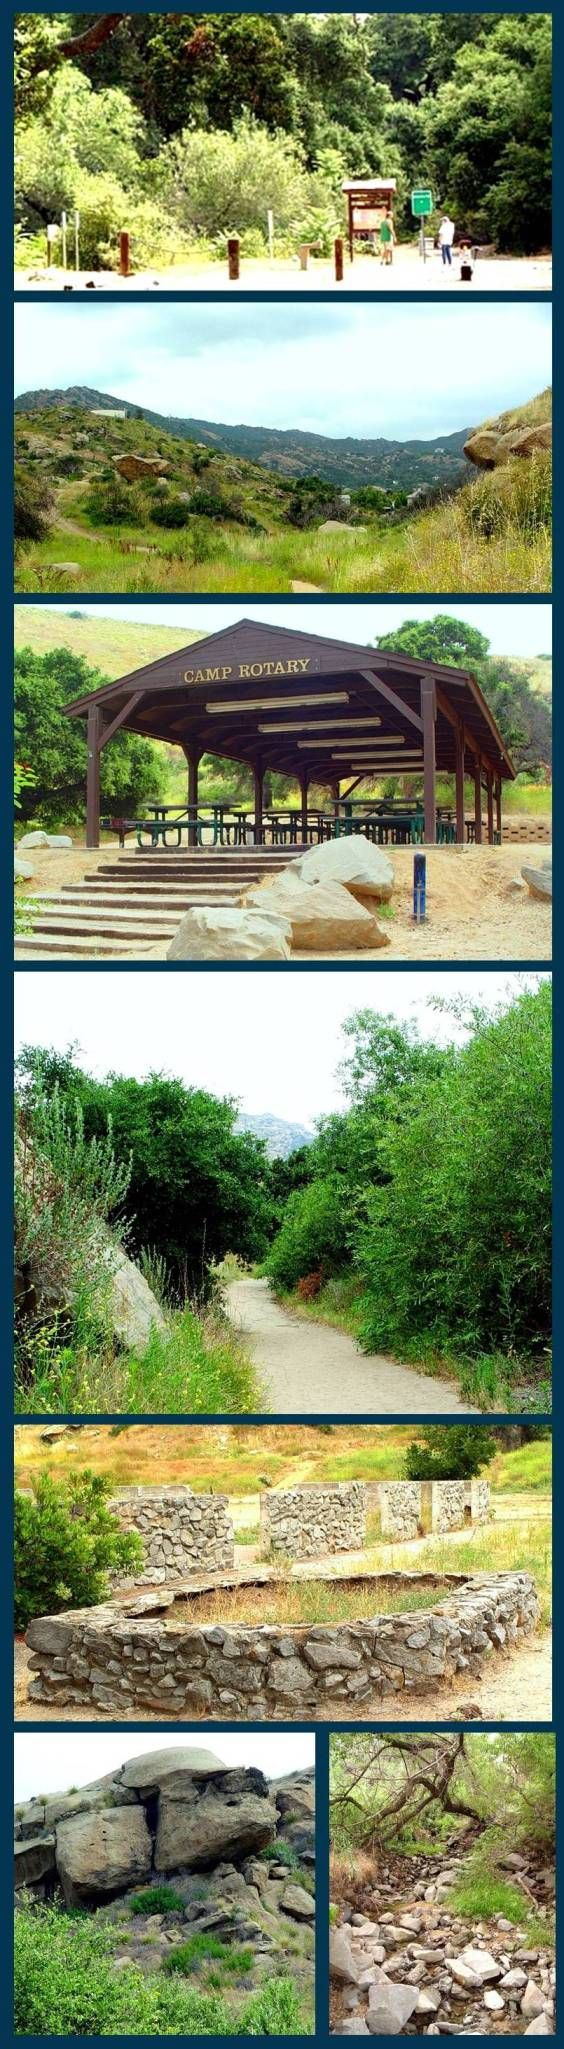 Corriganville Park, Simi Valley. Simi Valley Places and Things To Do, visit Photos at www.facebook.com/jmanninsurance